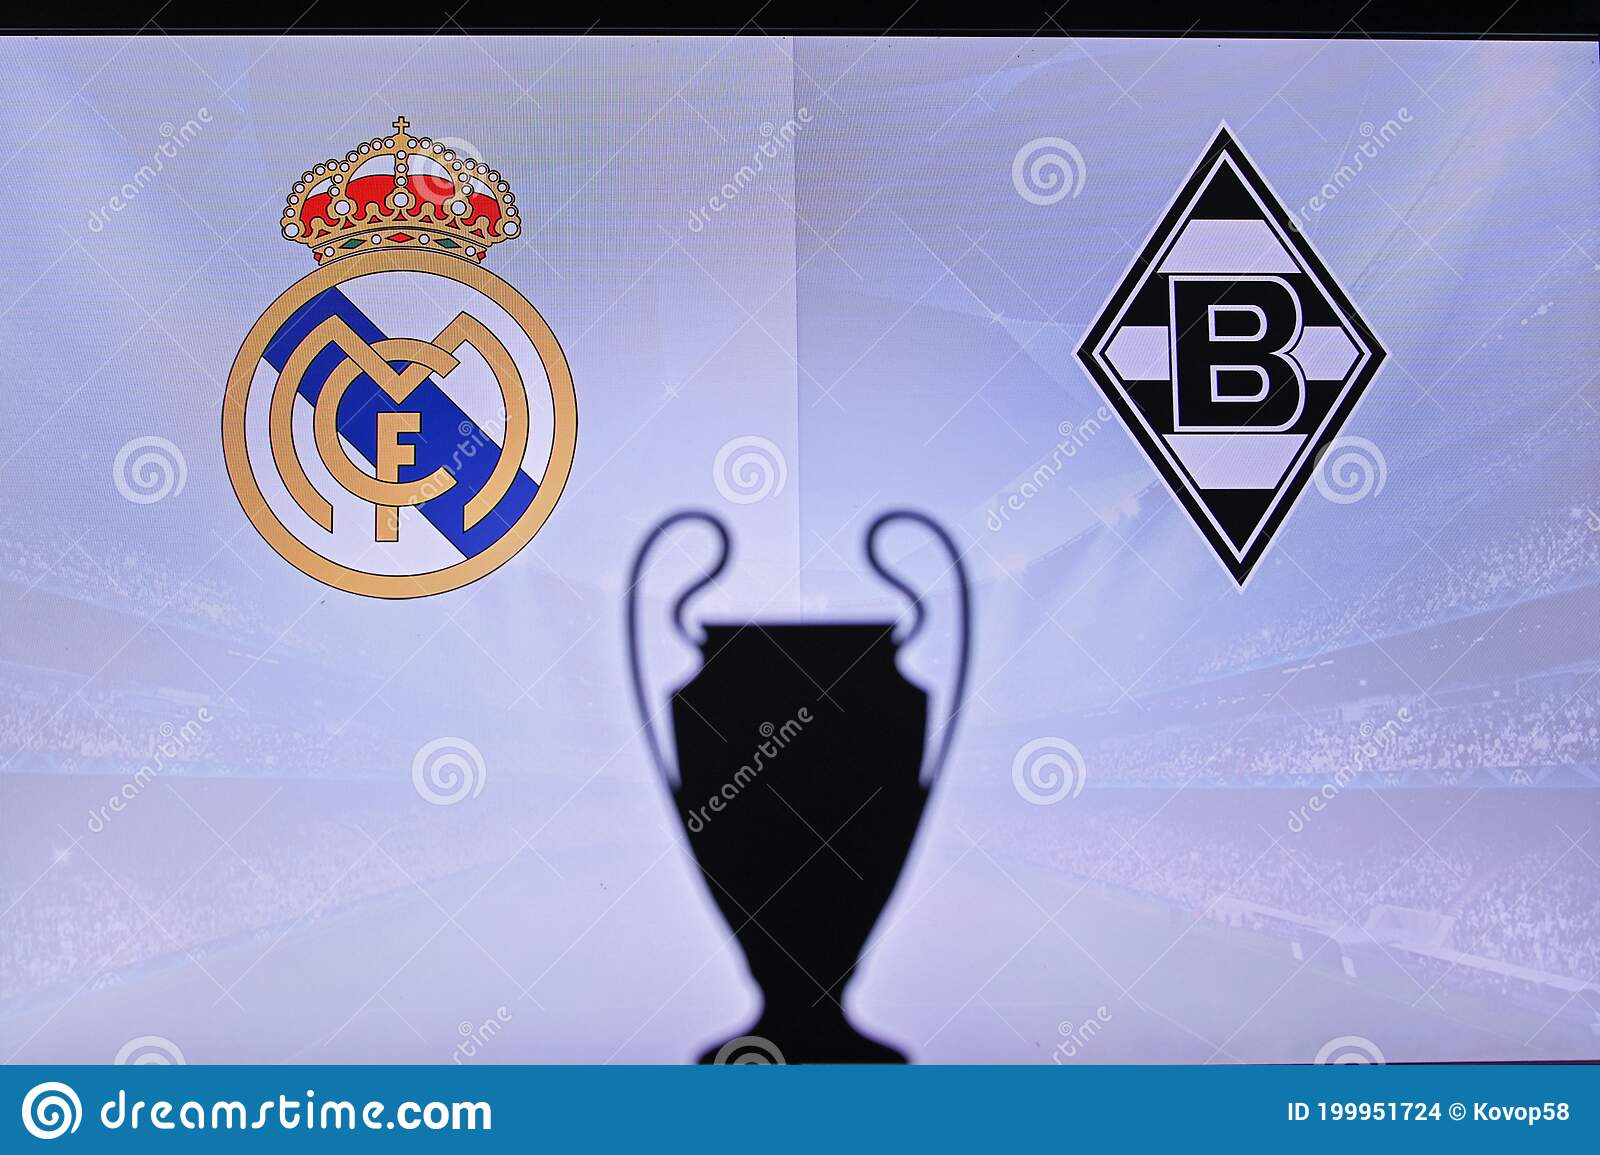 MADRID, SPAIN, NOVEMBER. 16. 2020: Real Madrid Vs. Borussia Mönchengladbach  Football UEFA Champions League 2021 Group Stage Match Editorial Stock Image  - Image of design, competition: 199951724